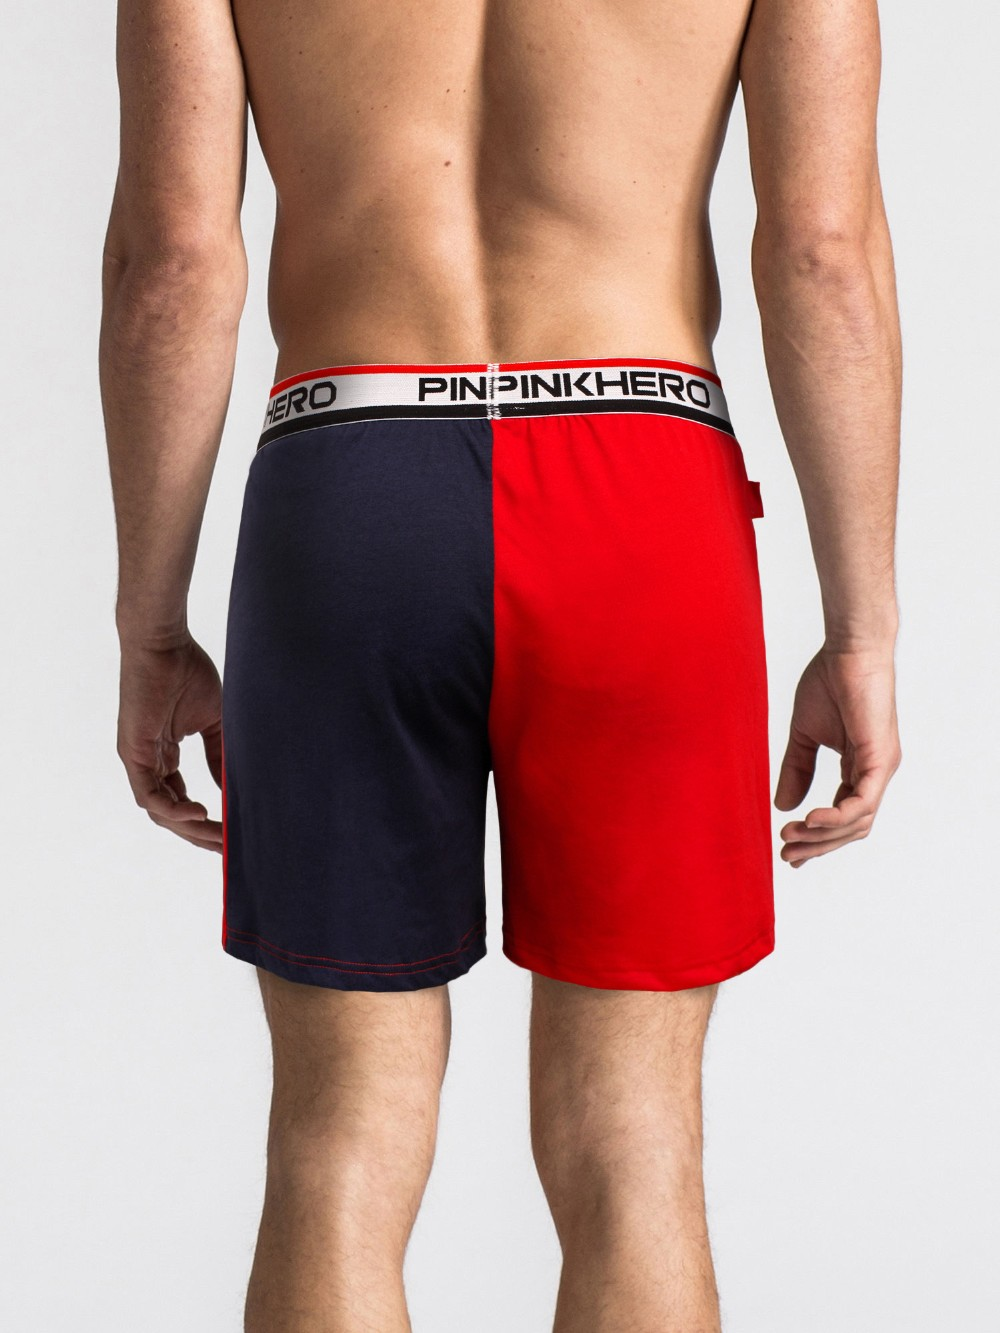 Free Sample Styles Of Mens Underwear Wholesale Boxer ...